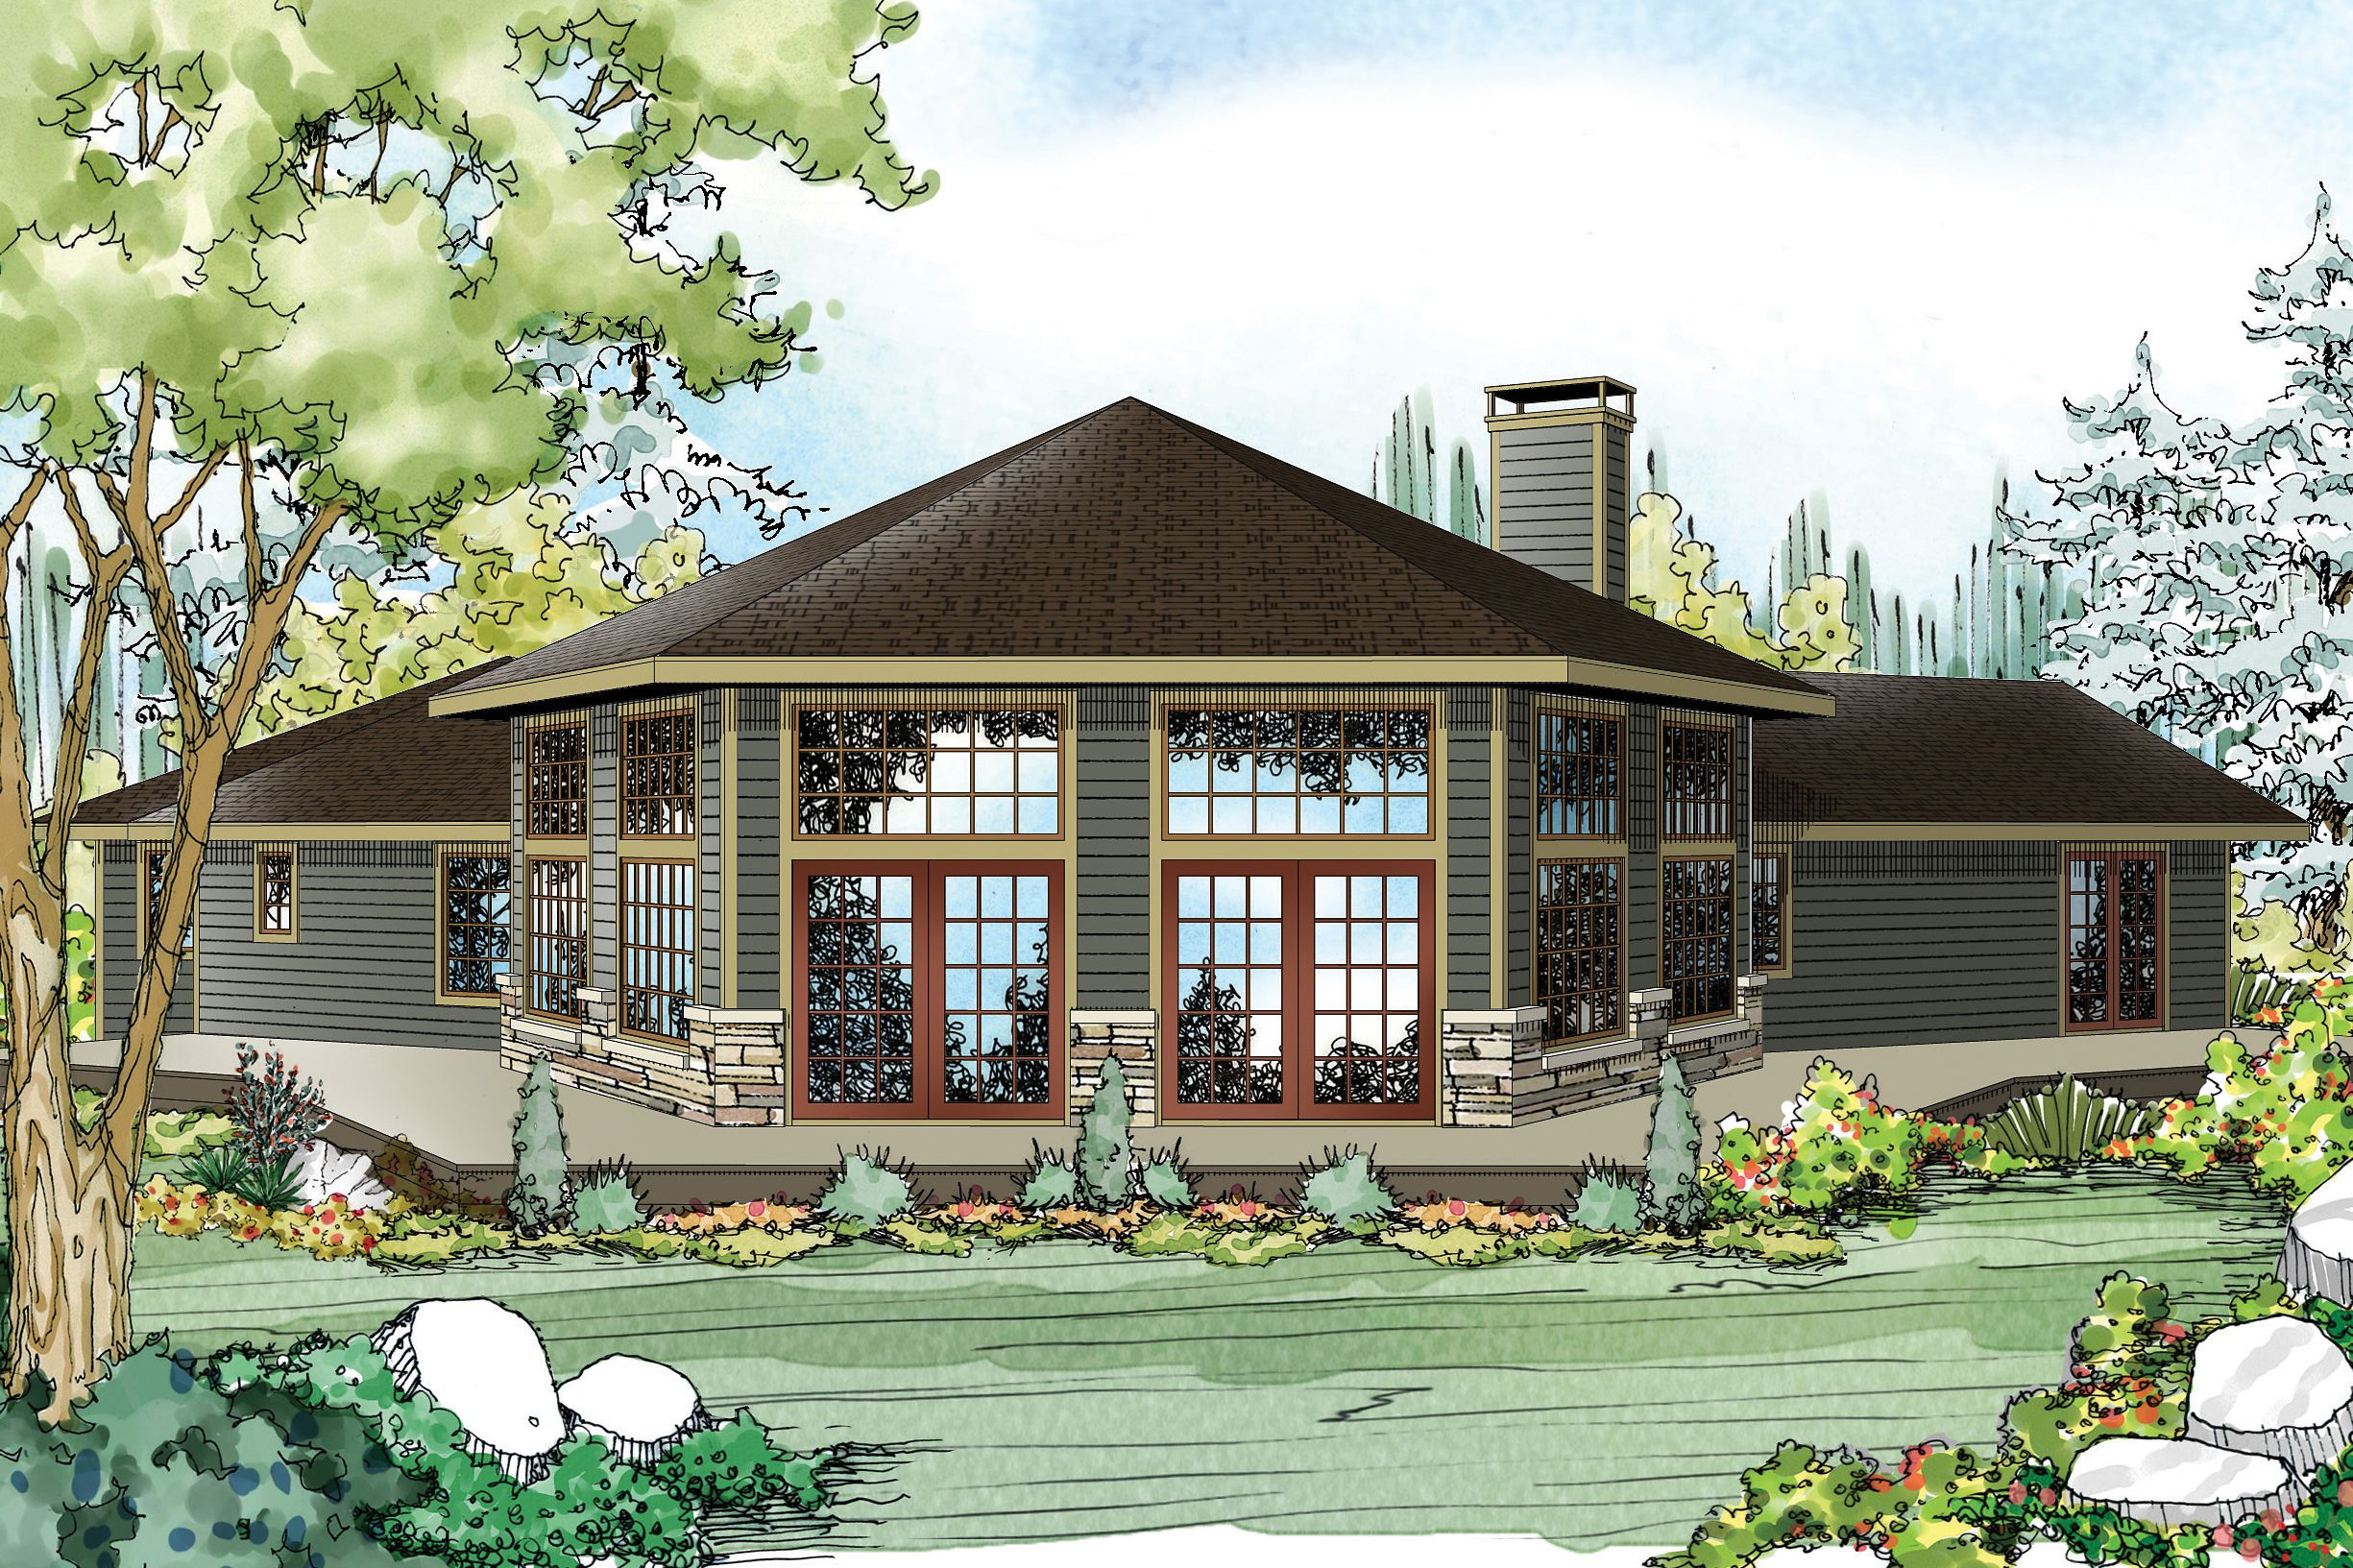 No matter where you are in the Silvercrest contemporary ranchstyle